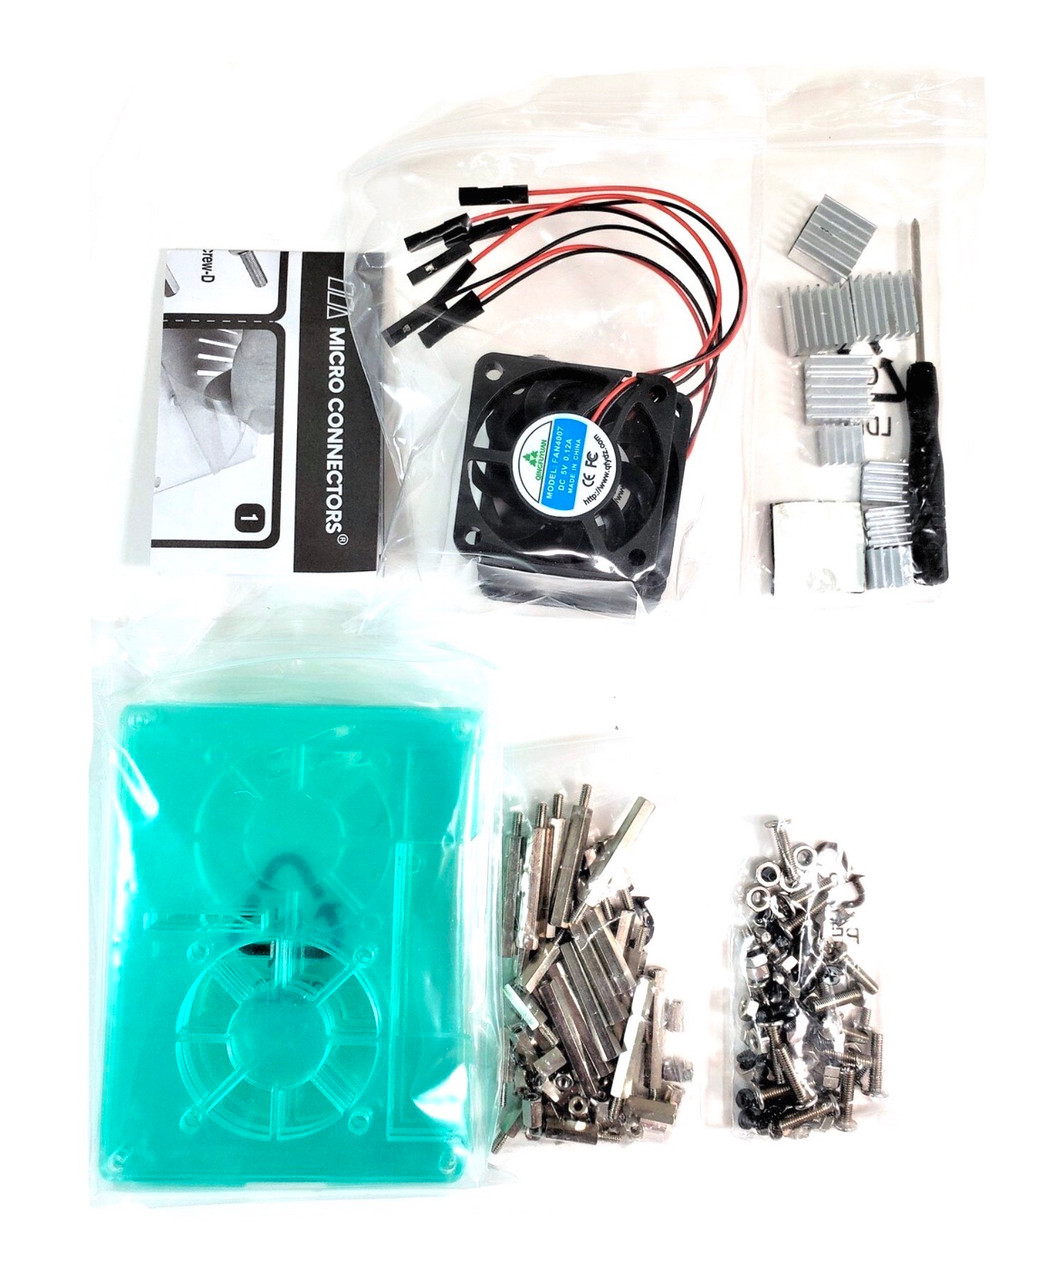 Four (4) Layer Stackable Clear Acrylic Raspberry Pi Case with Fans and Heatsinks